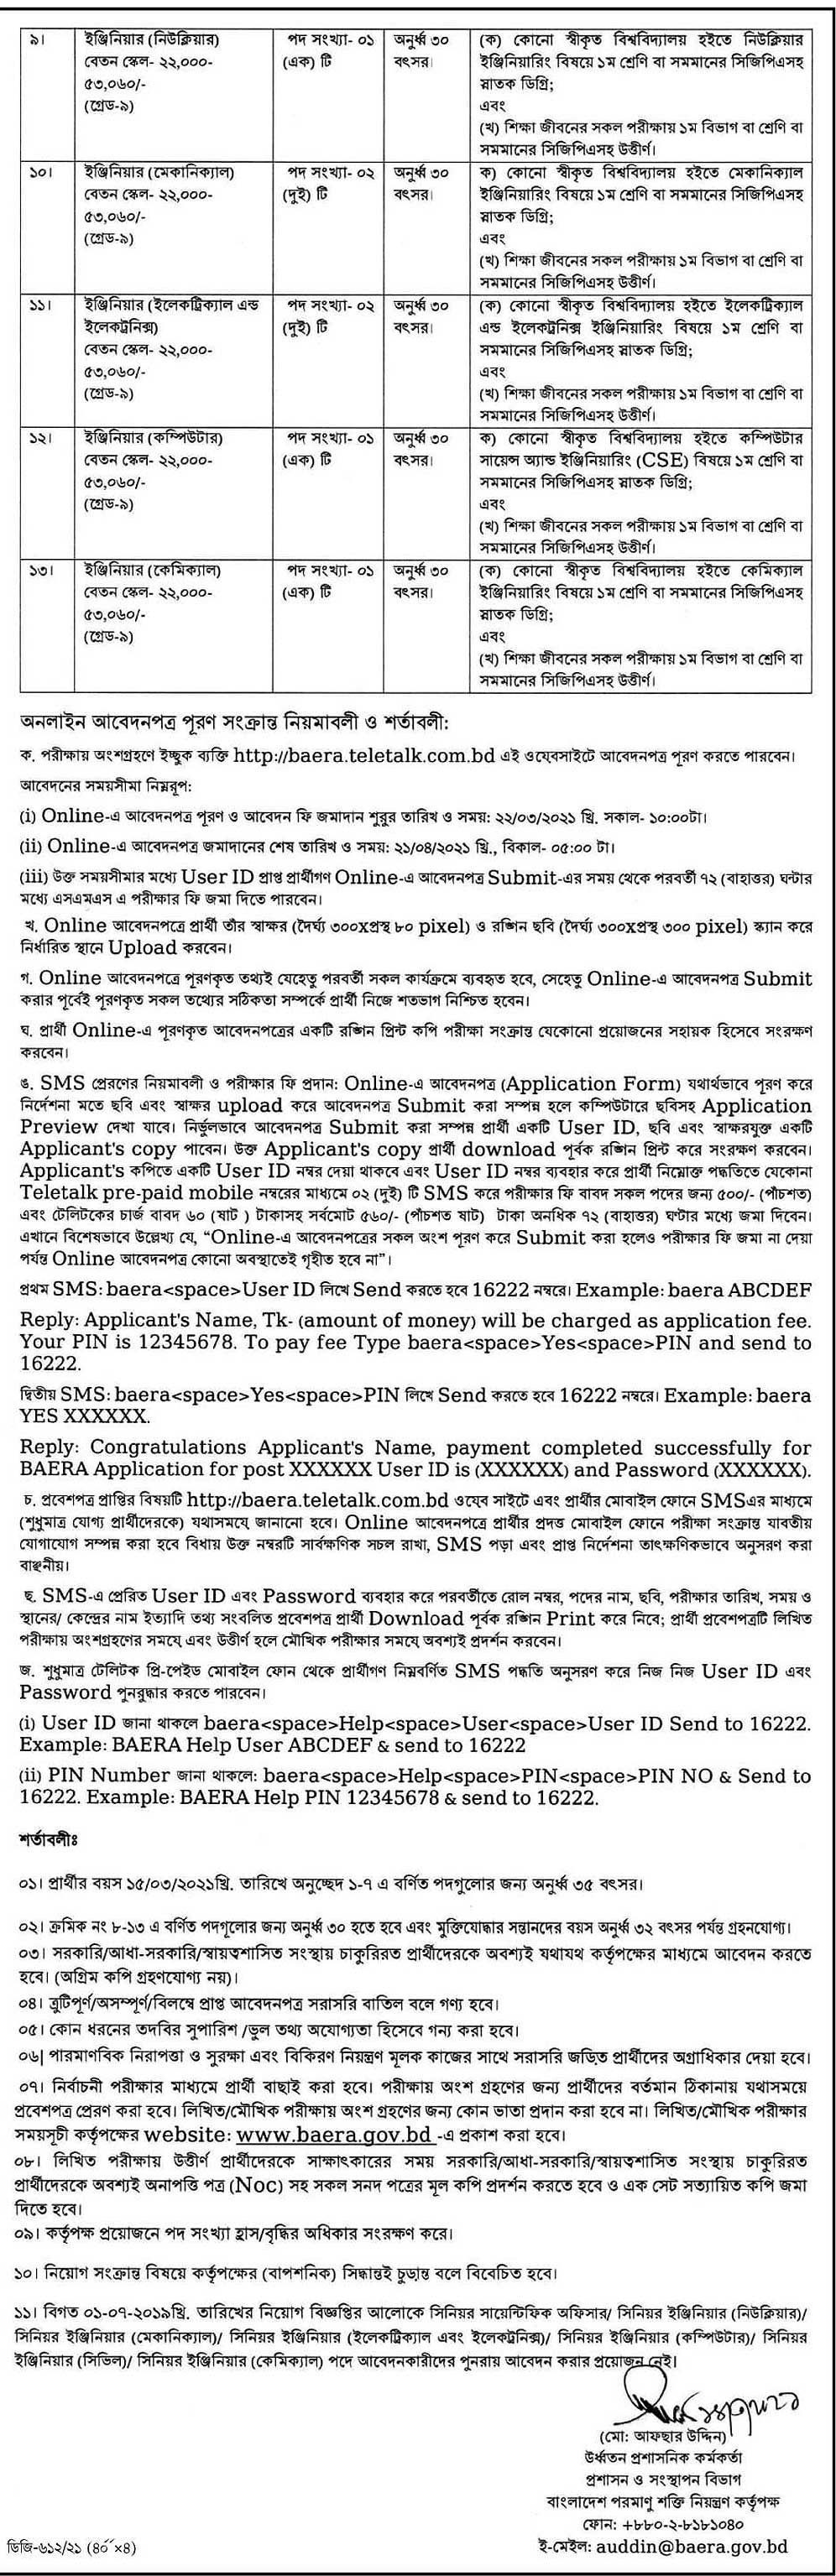 Bangladesh Atomic Energy Regulatory Authority BAERA Job Circular